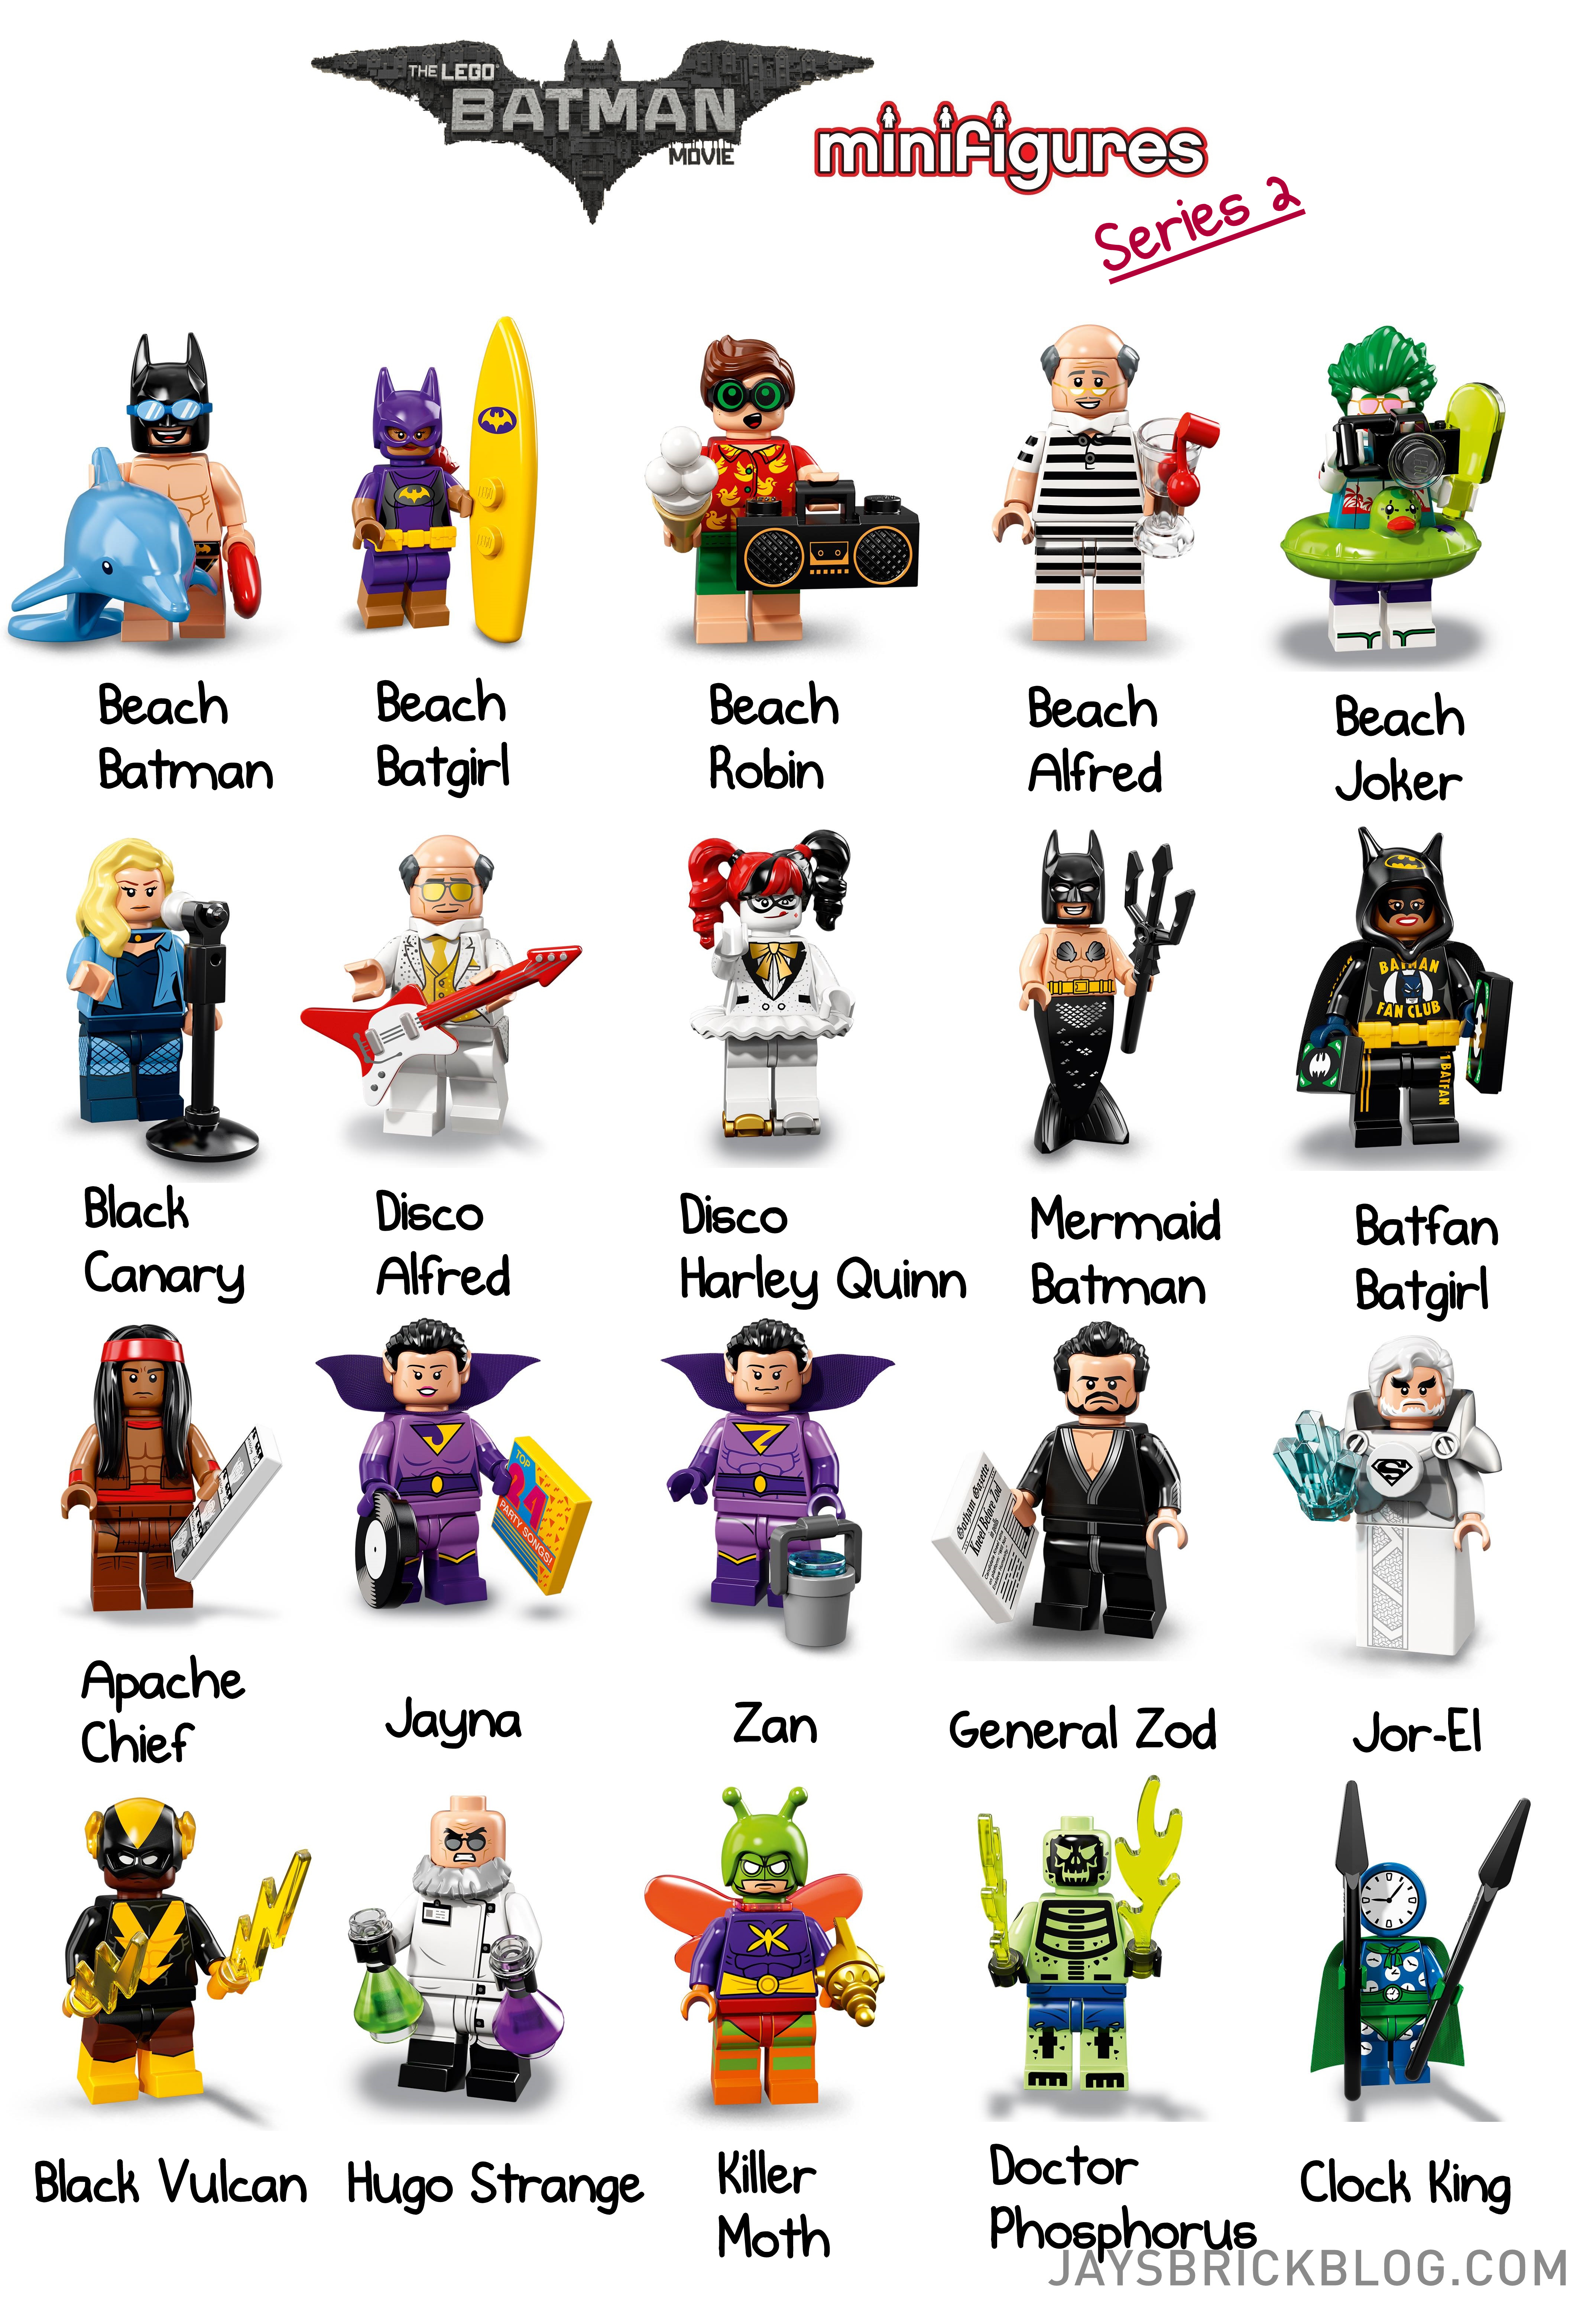 Check out the characters from LEGO Batman Movie ...